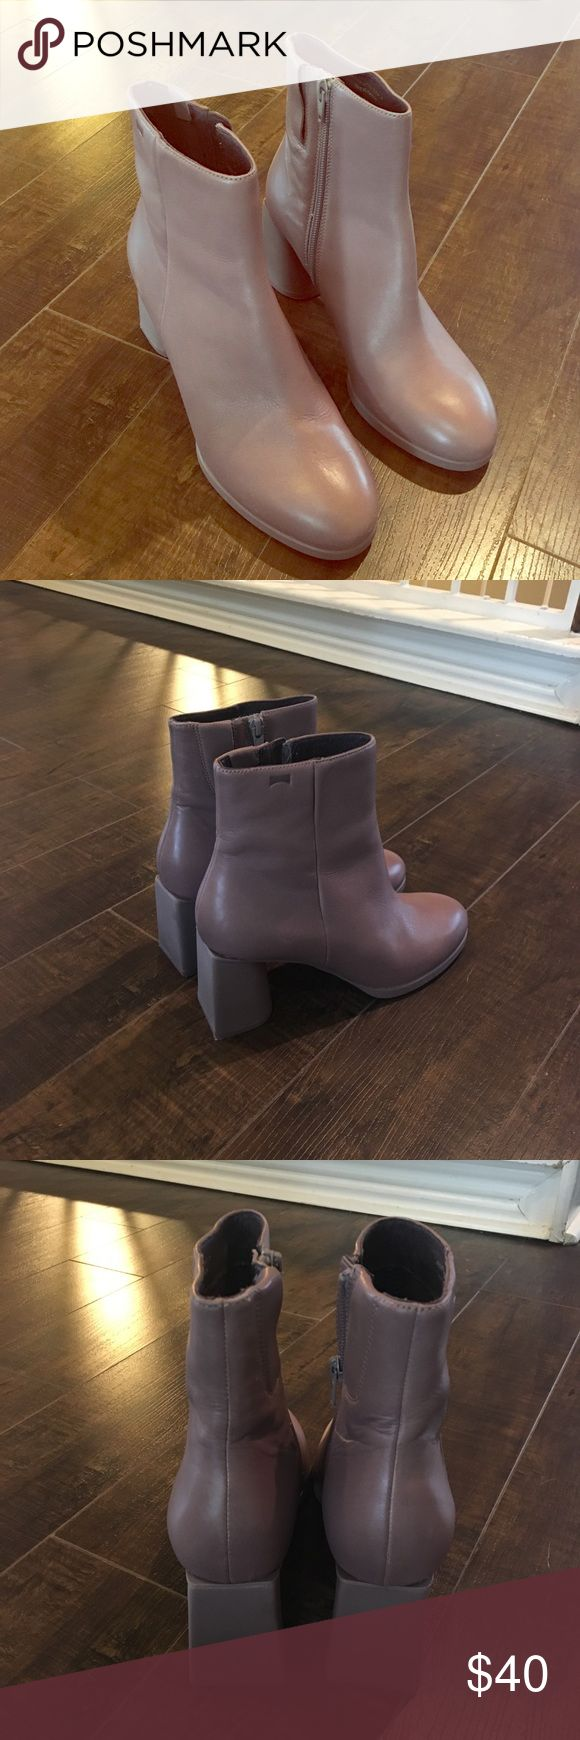 Camper boots NWOT size 39 mauve color Never worn! High quality leather! Camper Shoes Combat & Moto Boots